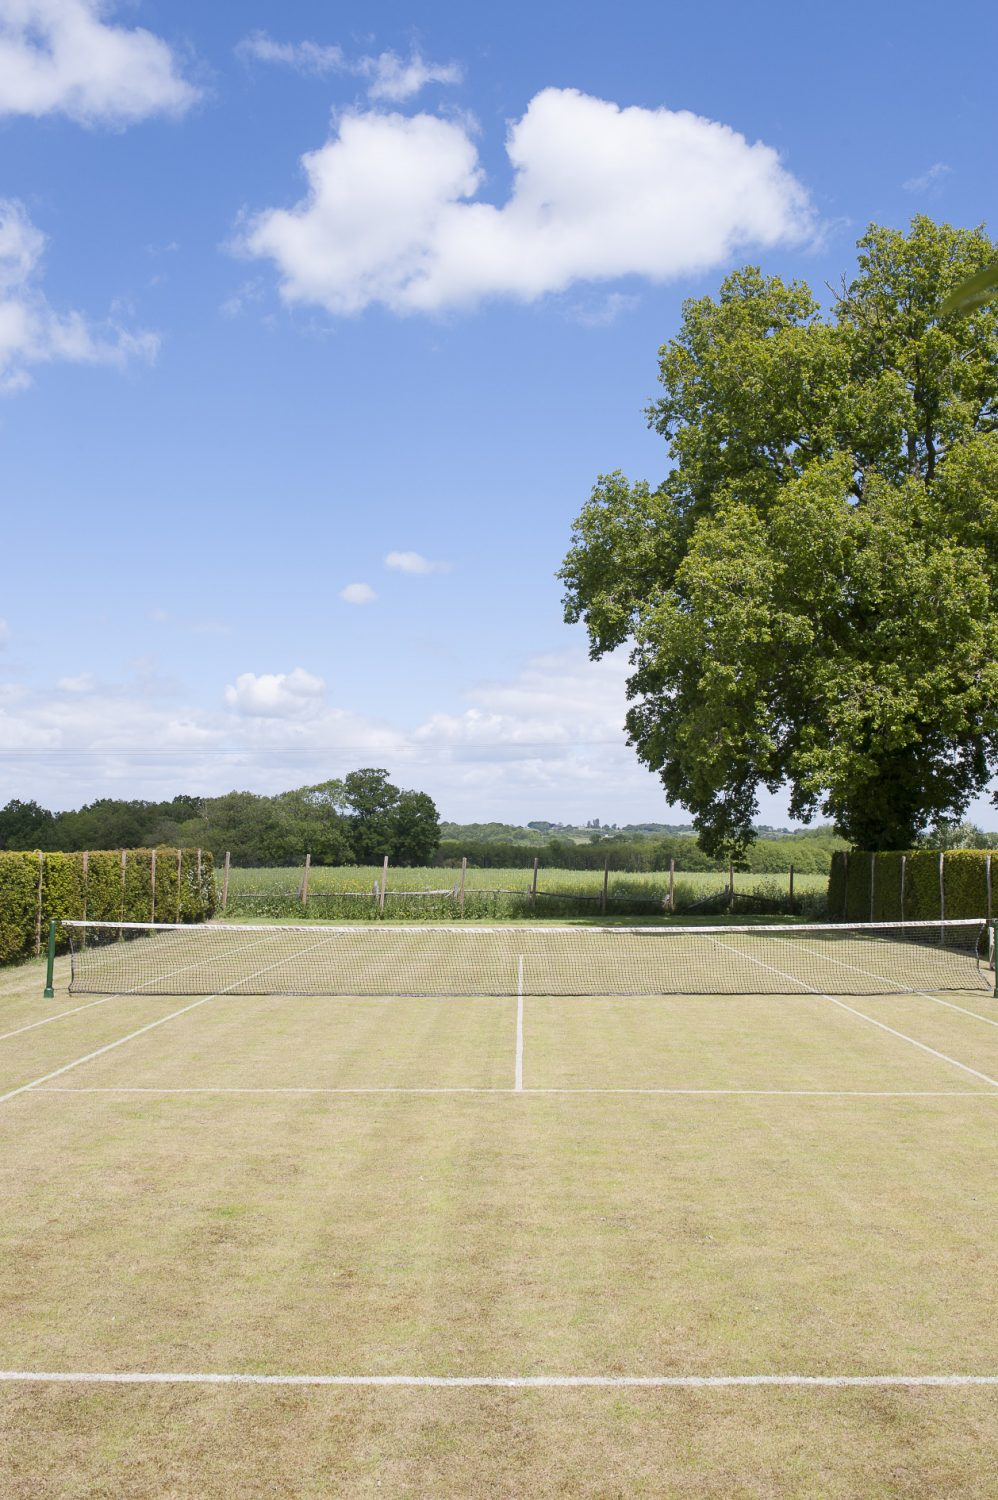 A neatly trimmed hedge conceals the immaculately presented grass tennis court